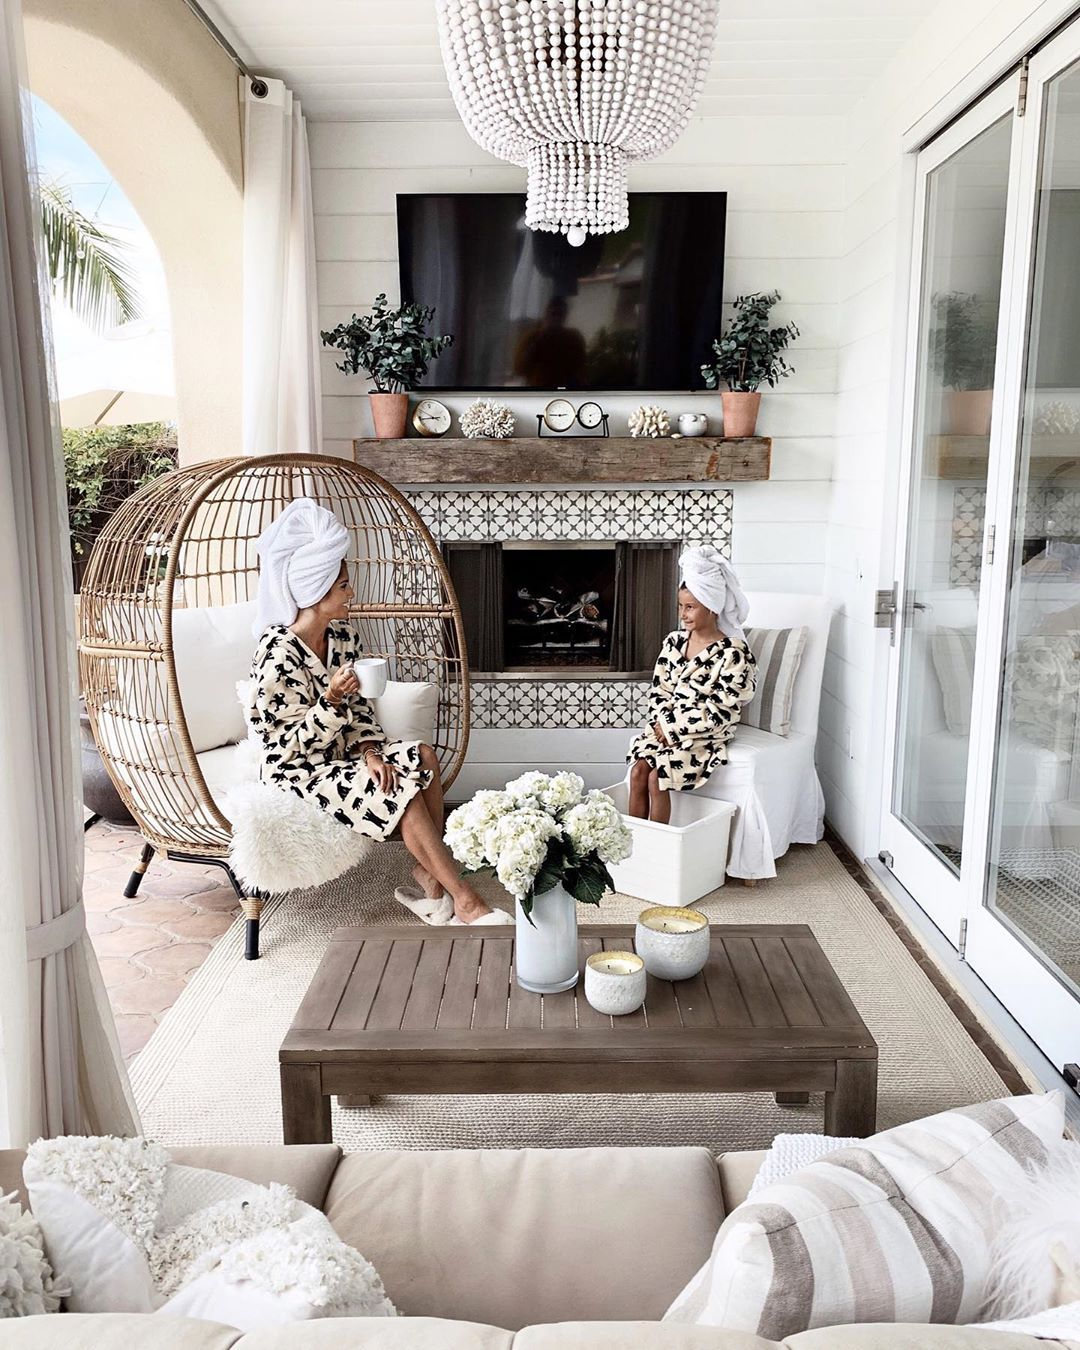 Design Your Own Living Room Free: A Relaxing Spot In This Backyard Patio @stylinbyaylin